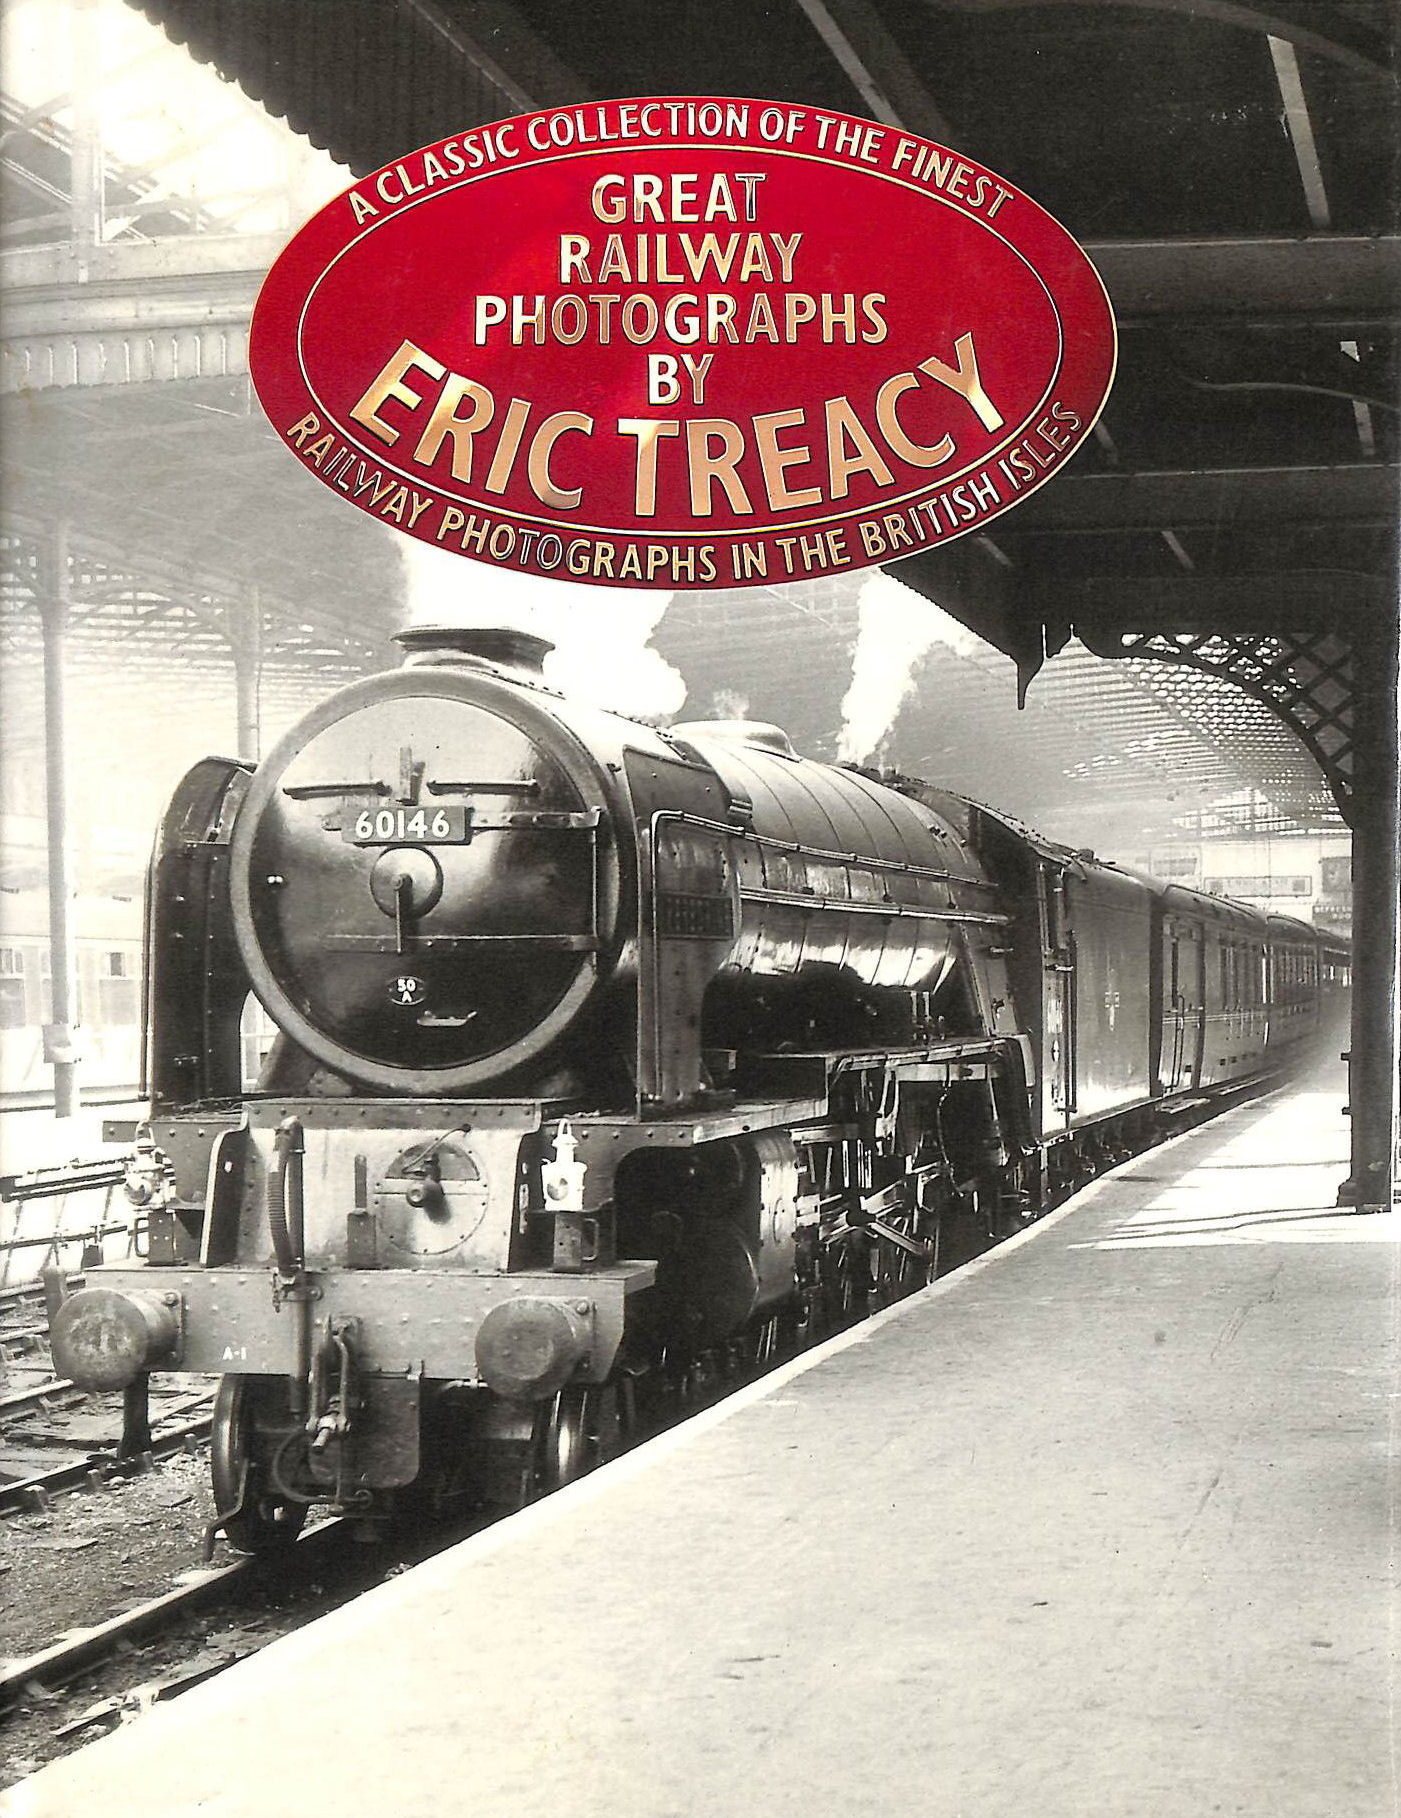 Image for Great Railway Photographs: A Classic Collection of the Finest Railway Photographs in the British Isles